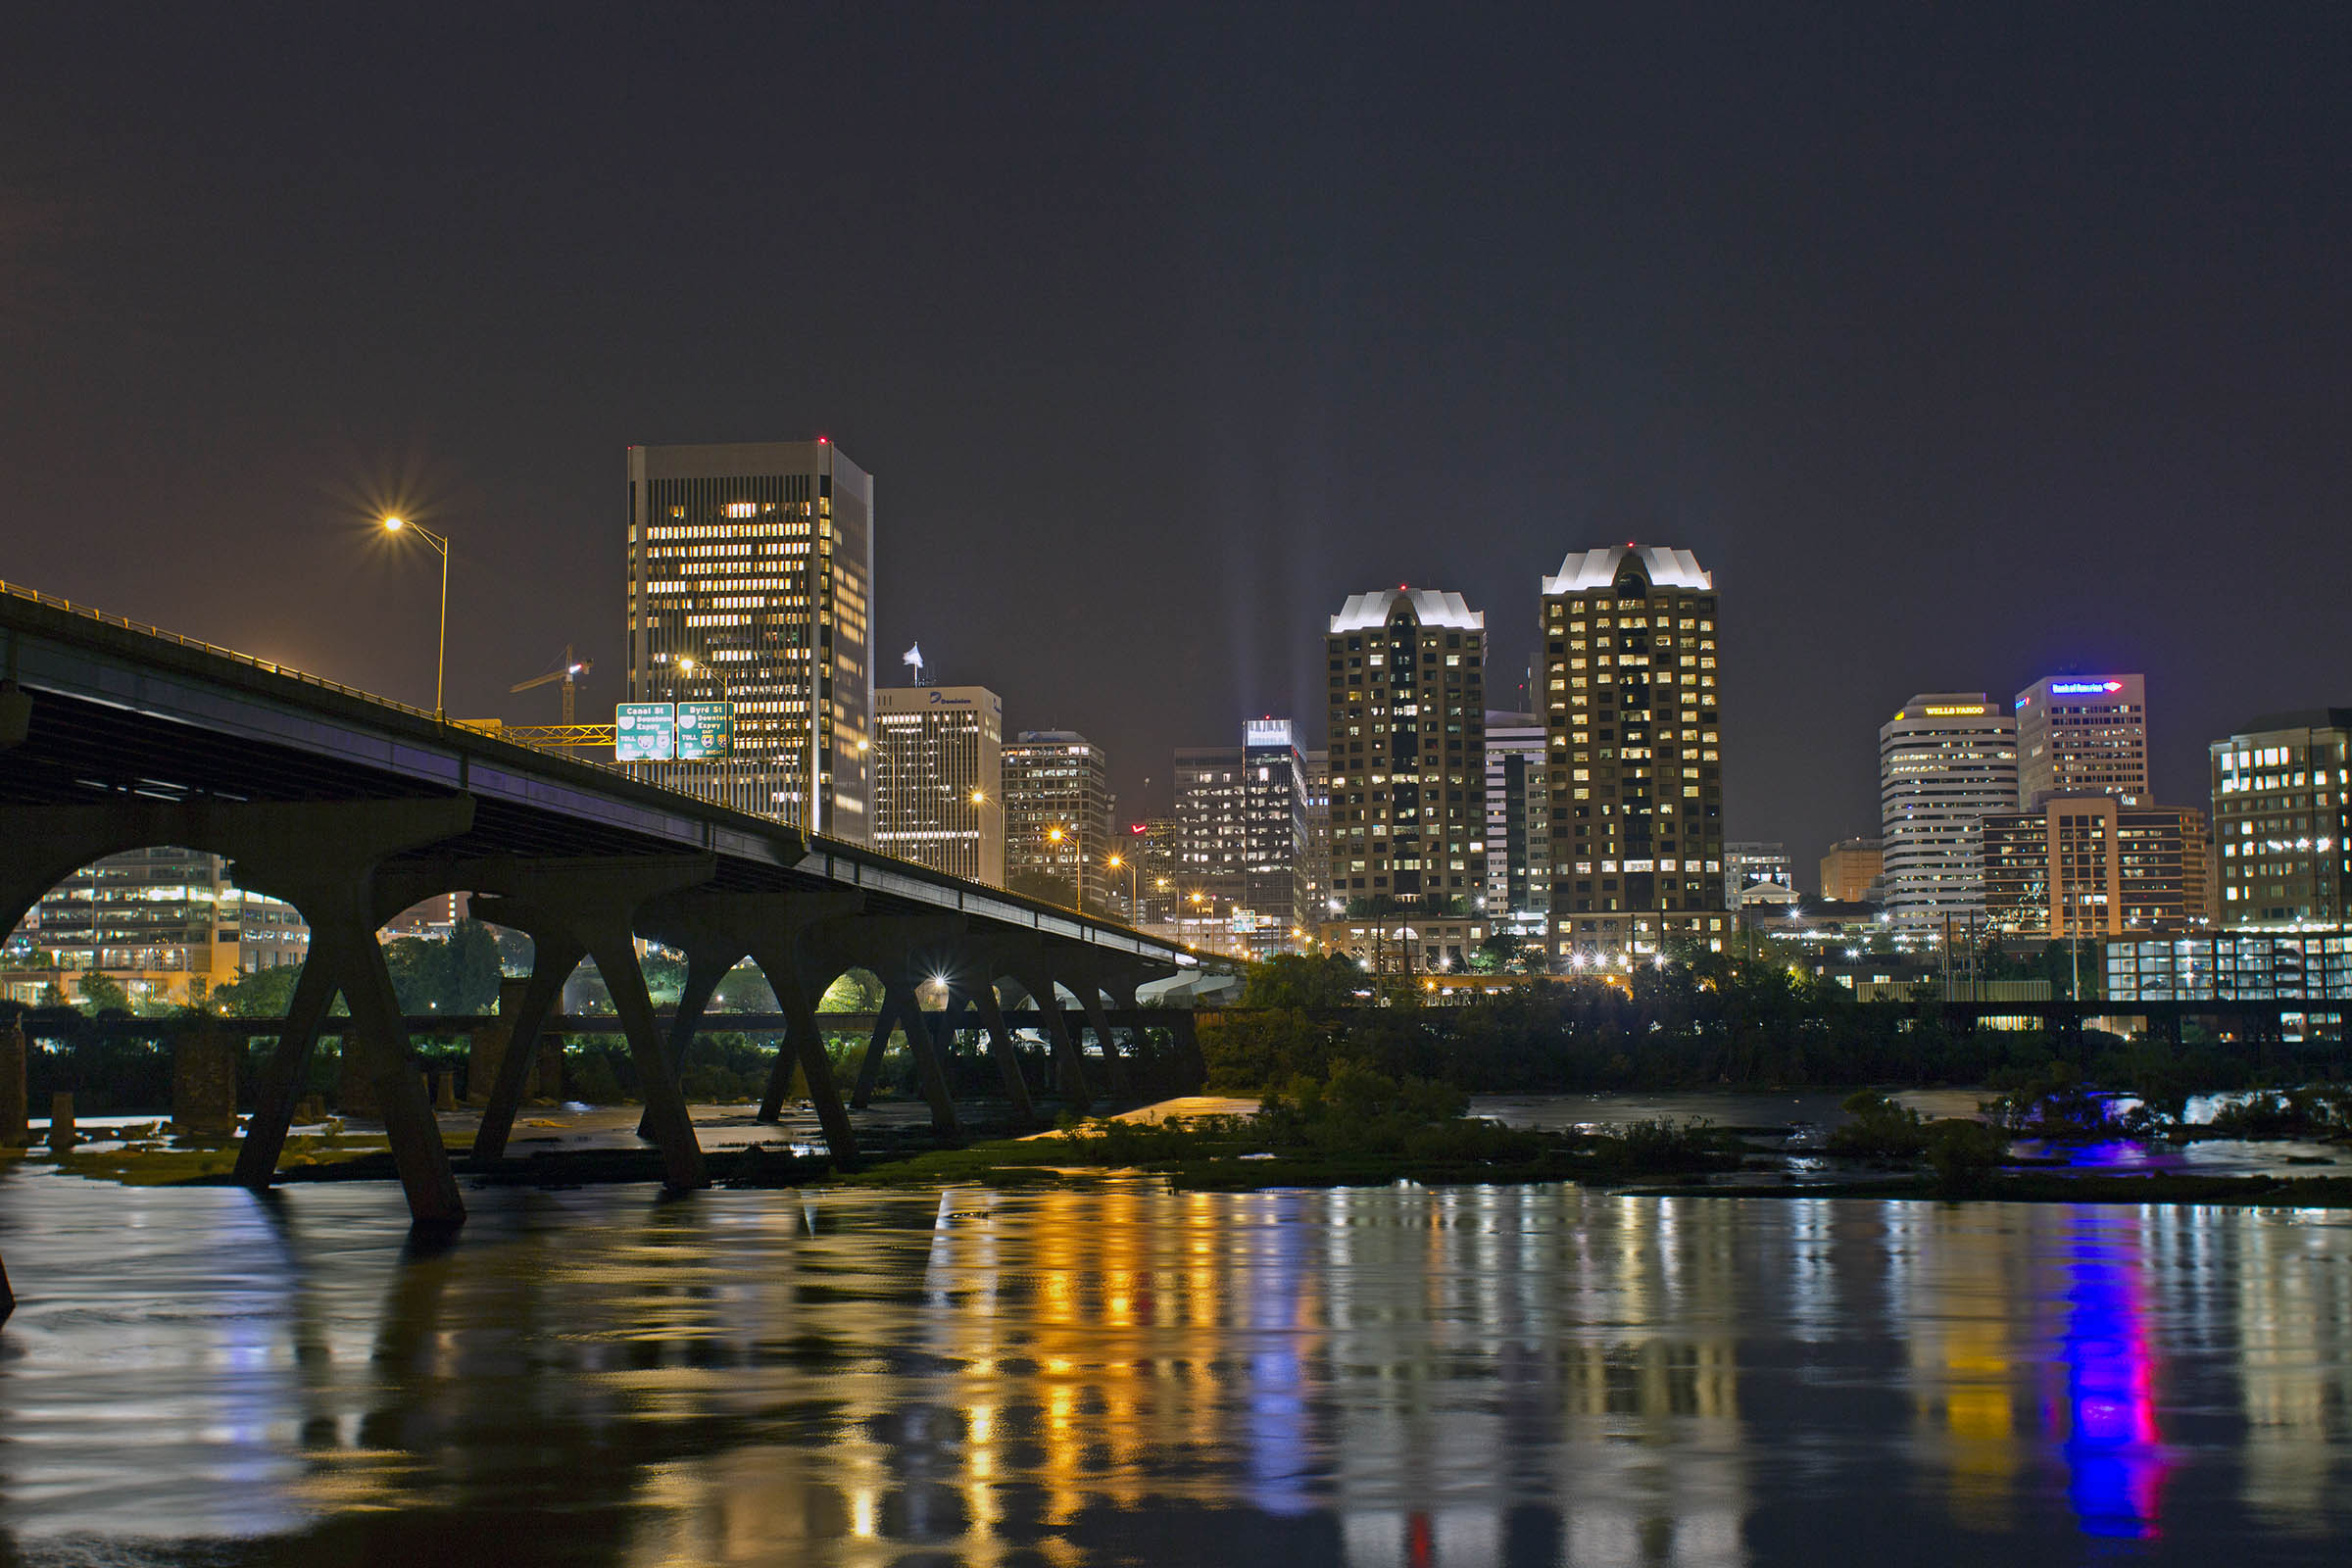 Night photo of the James River and downtown Richmond, VA, USA, 2017.